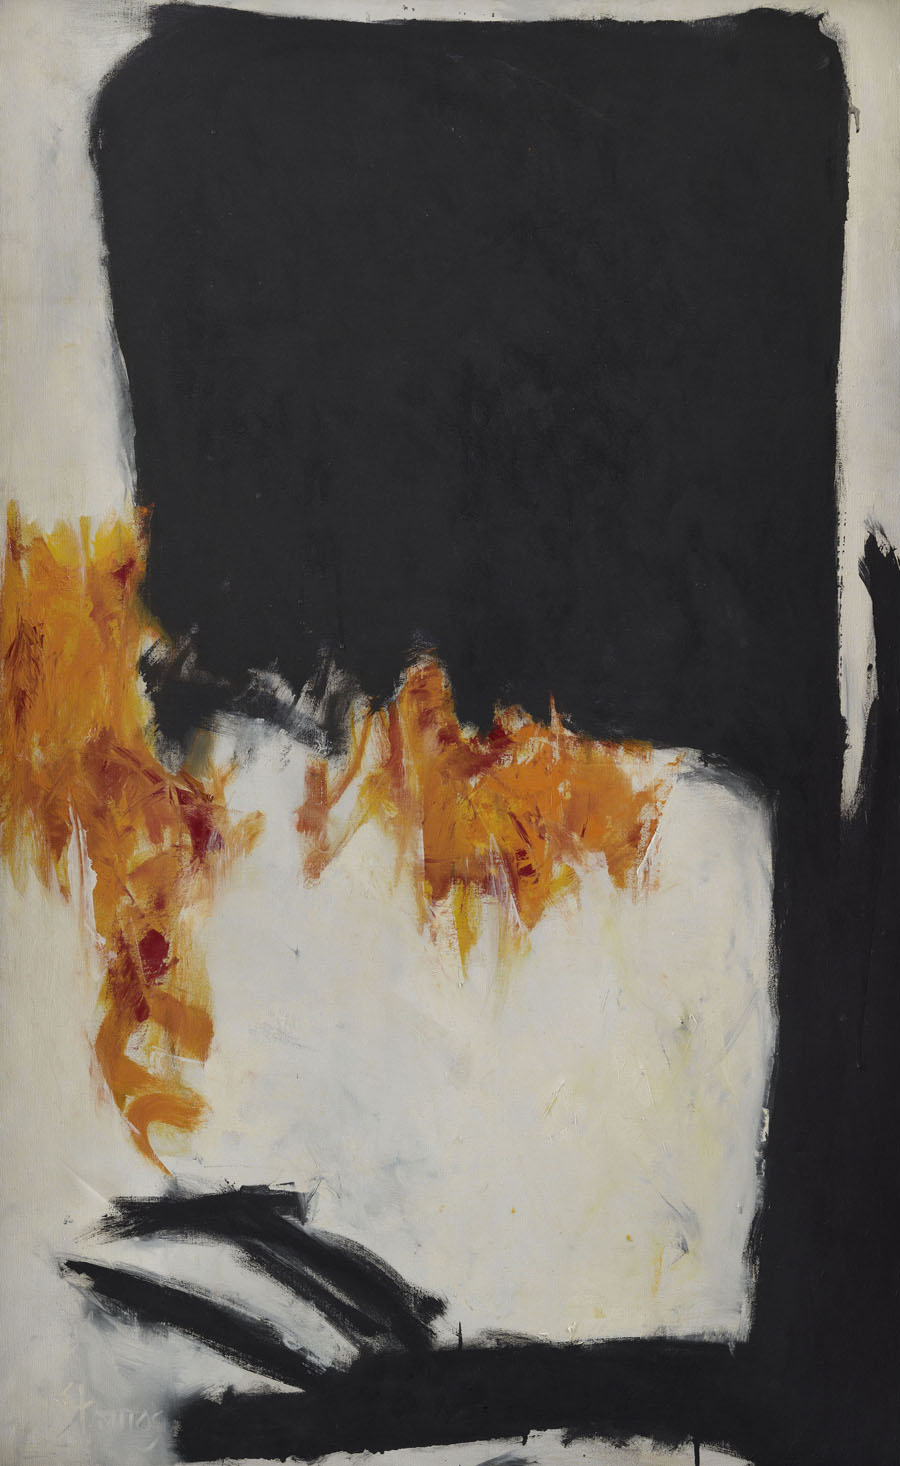 This work by Theodoros Stamos is an abstract composition in orange, white and black